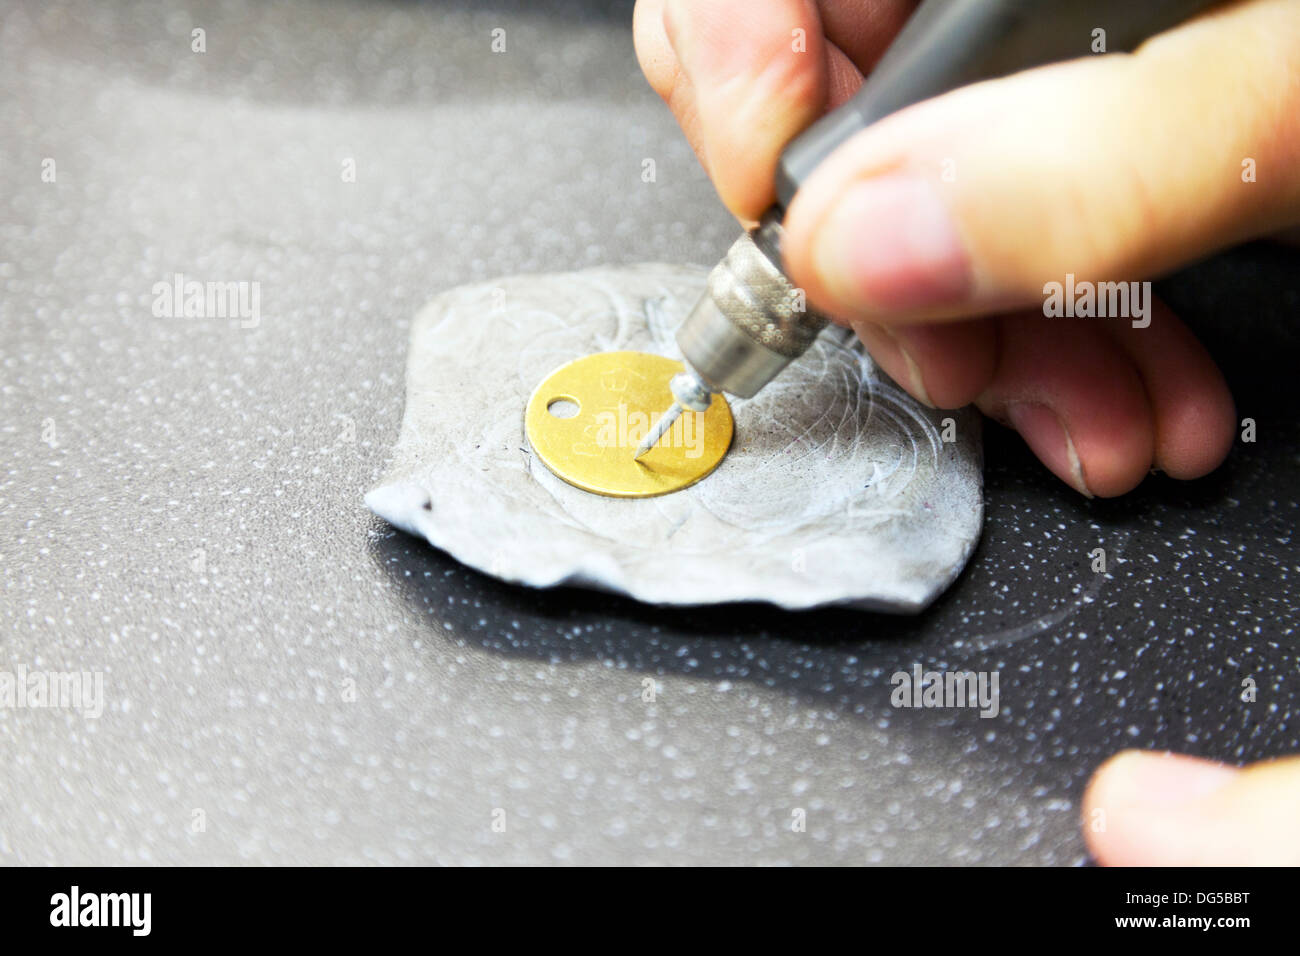 Man engraving disc with hand held engraver engrave name on pet disc male working - Stock Image